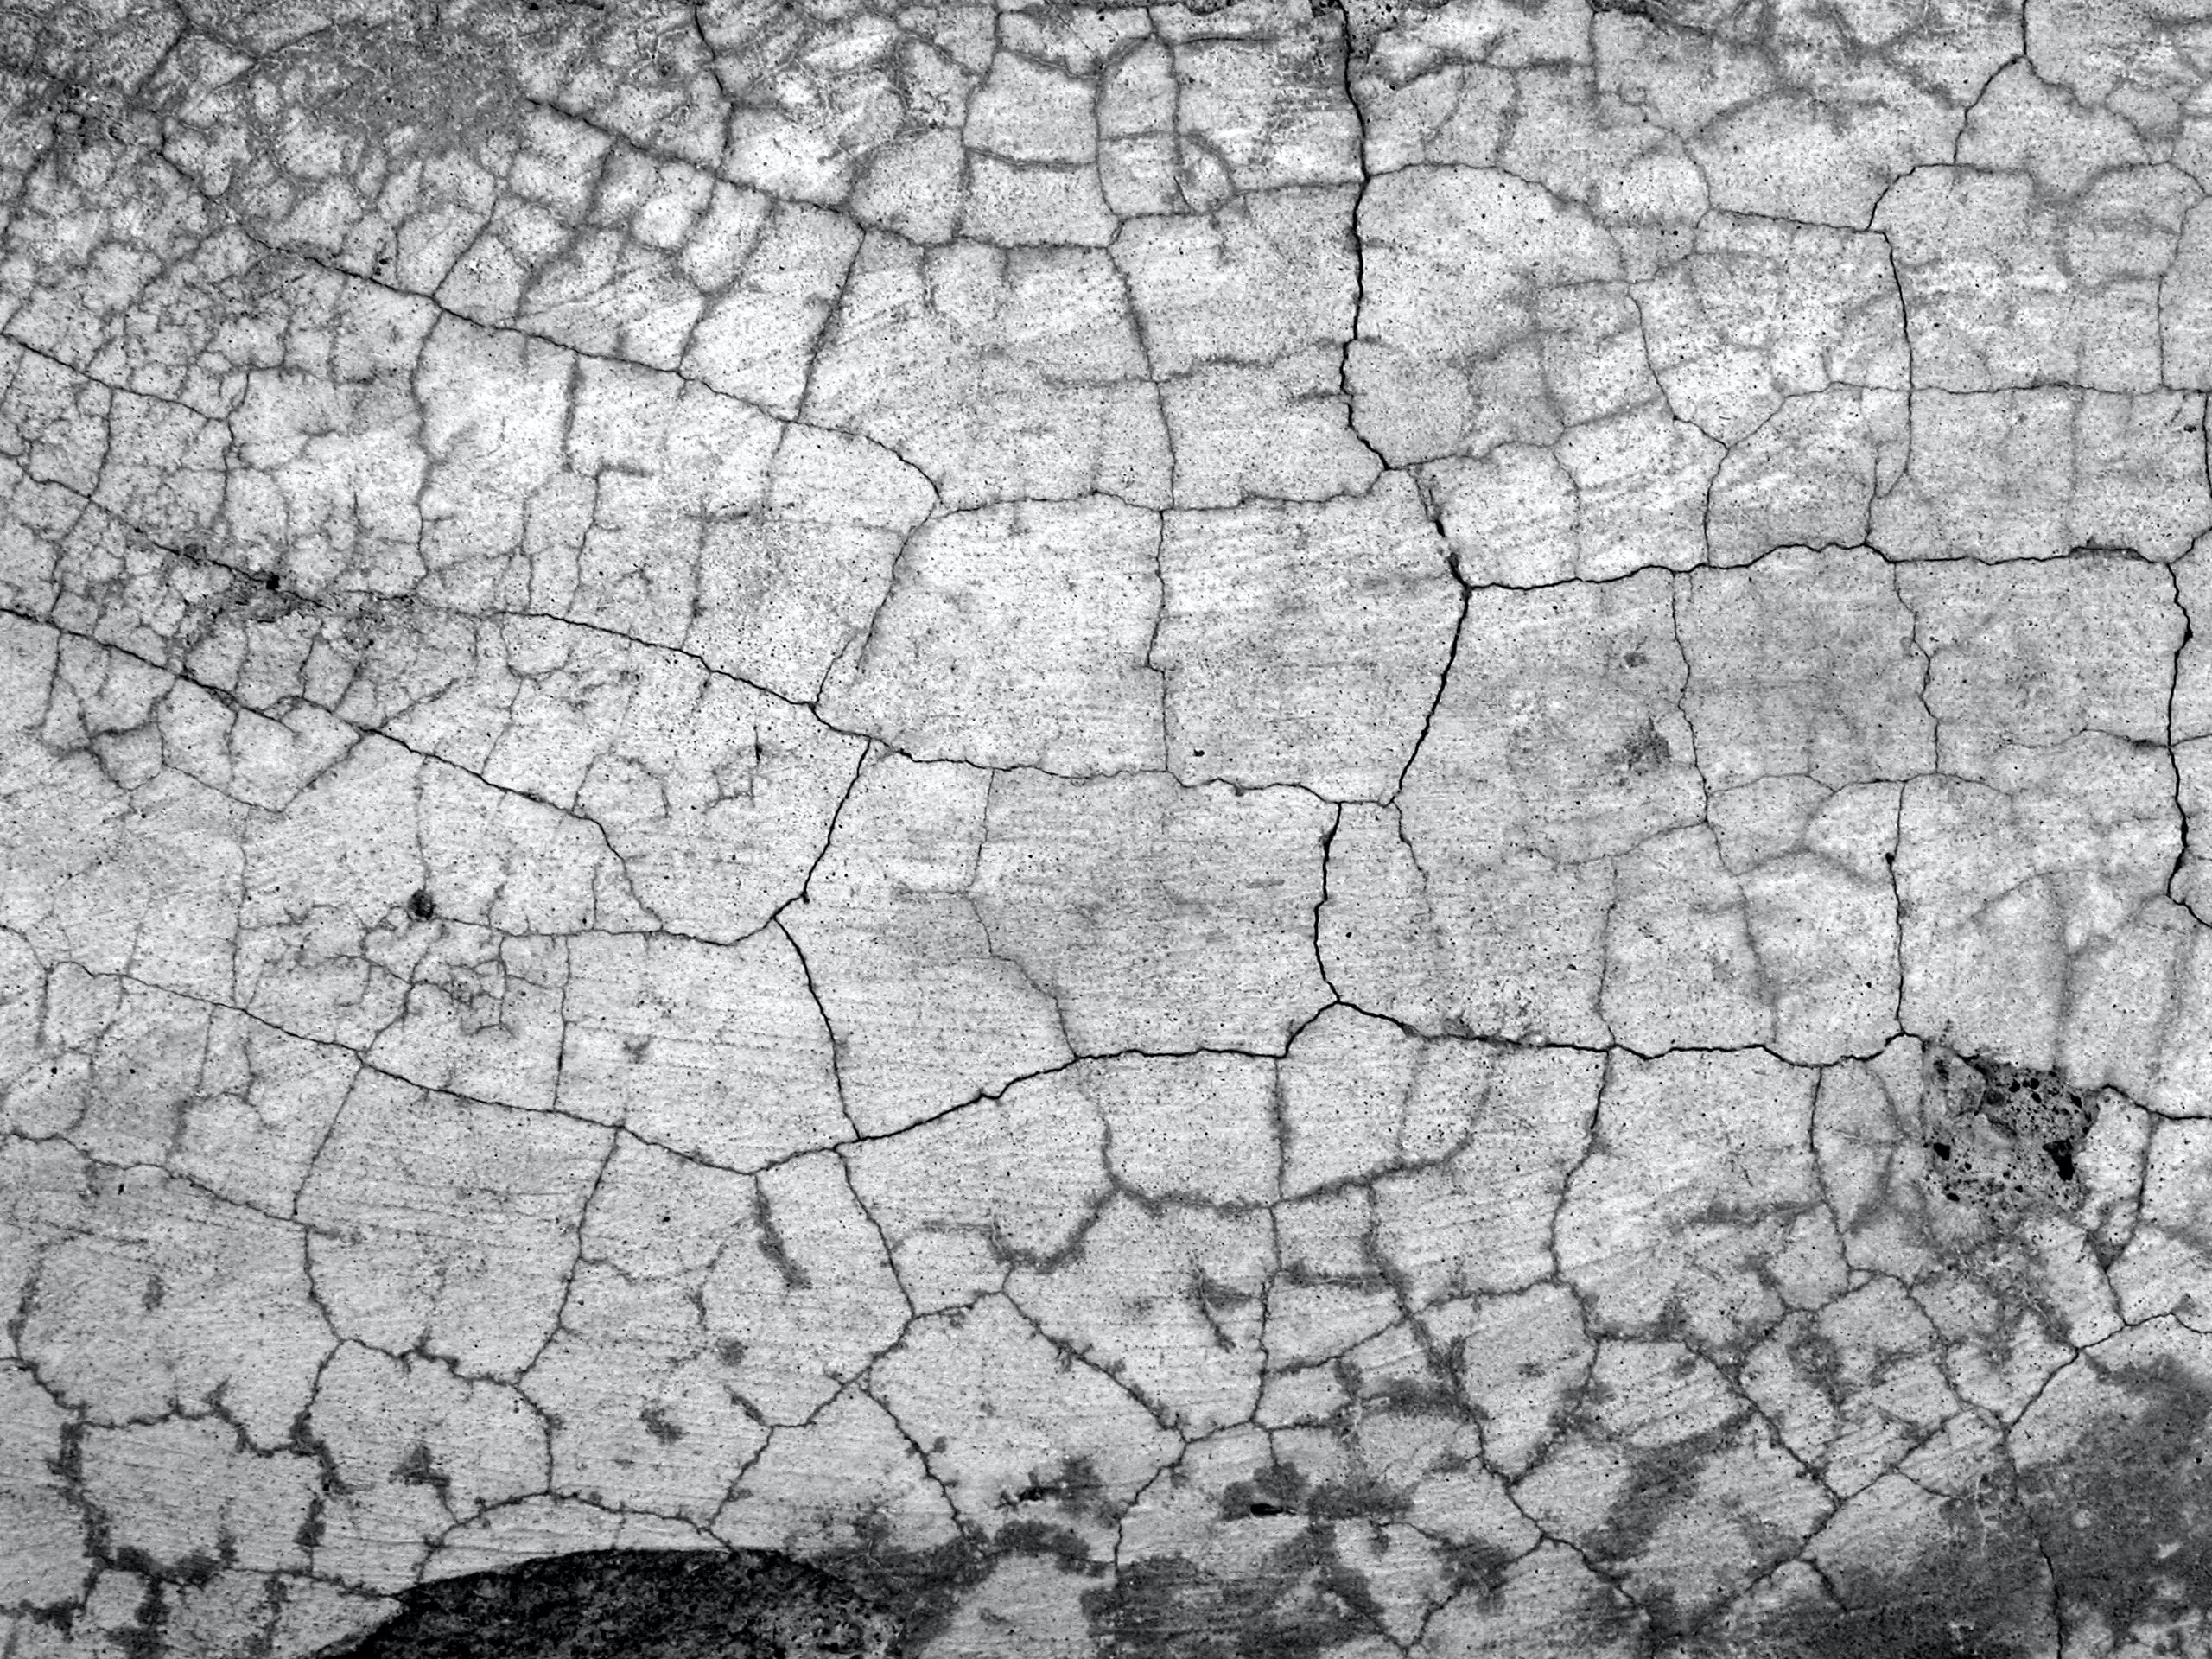 aerial photo of dried land